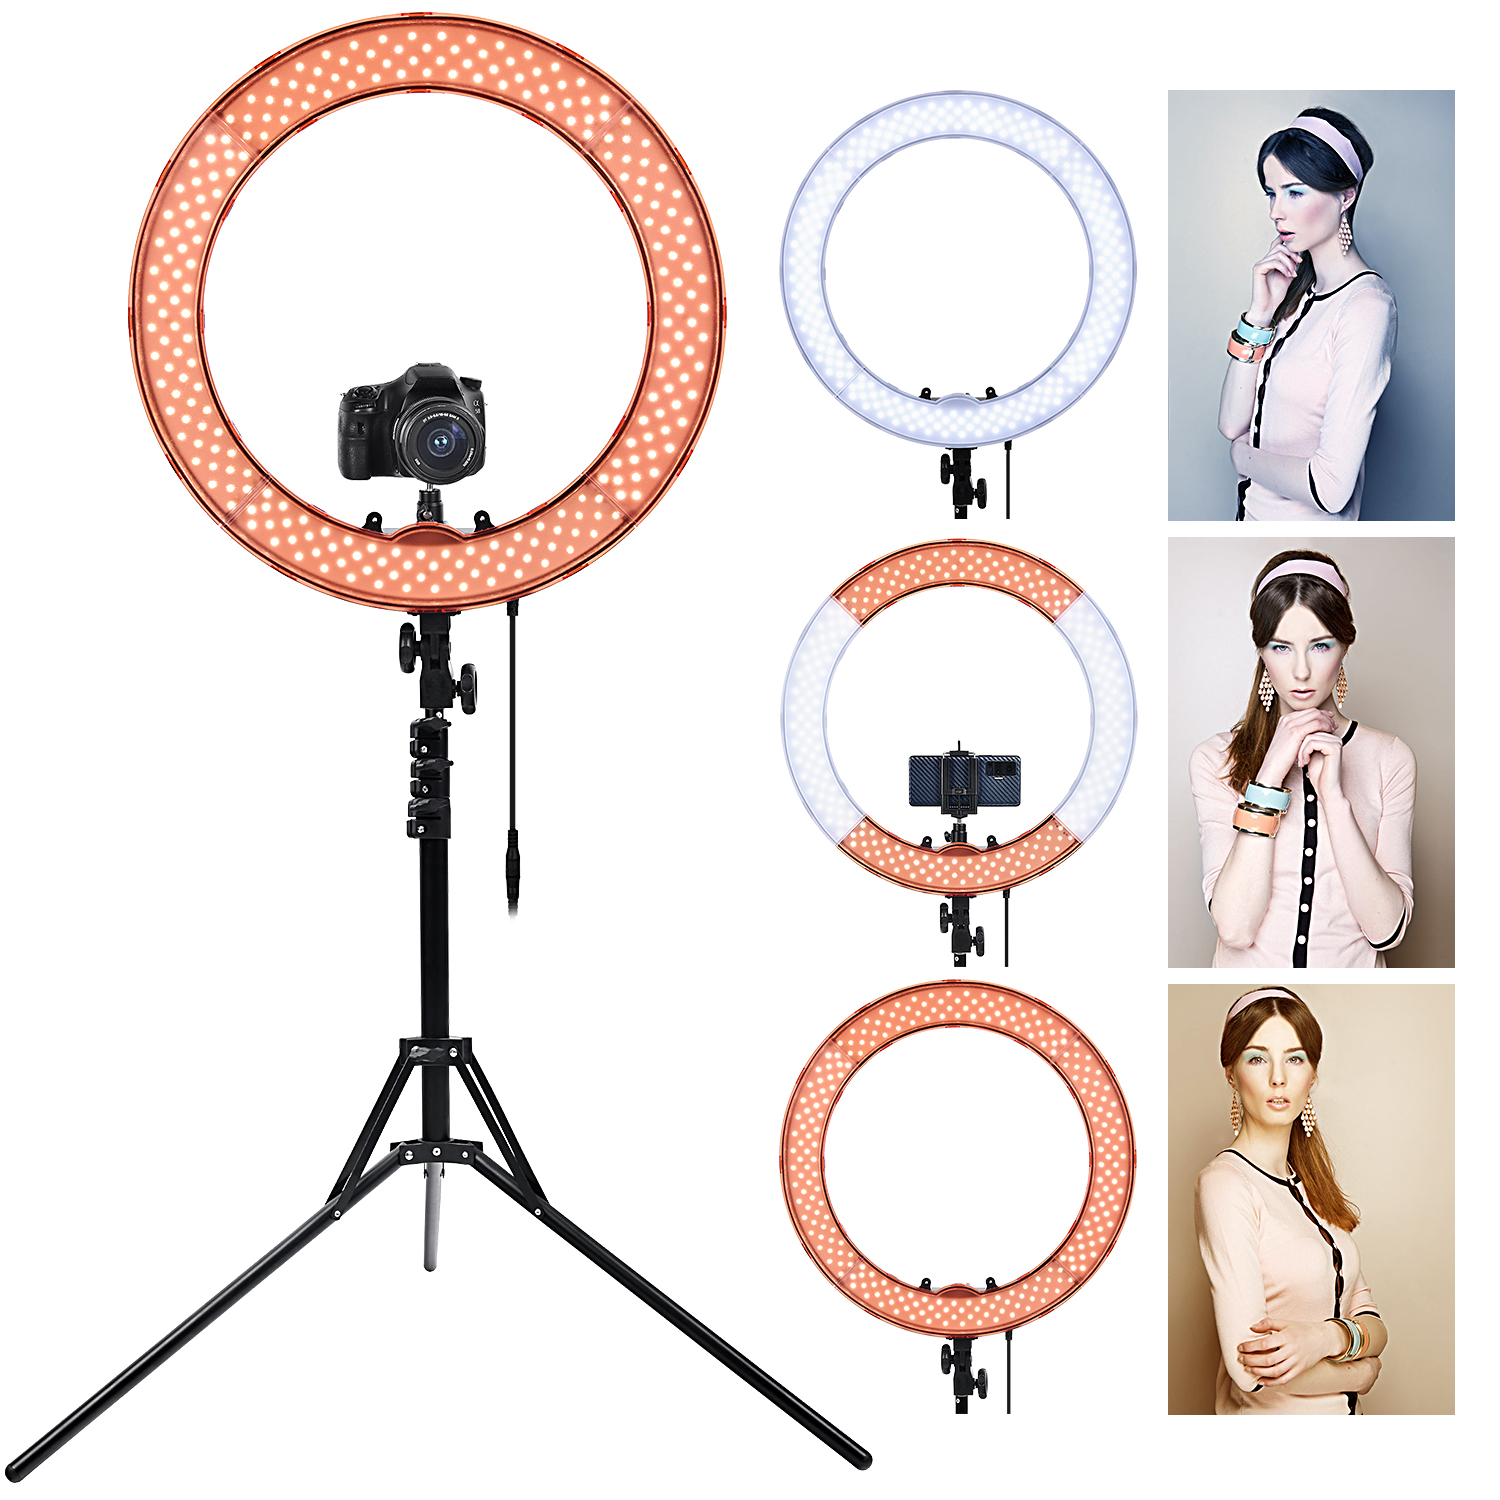 FOSOTO RL-18 Led Ring Light Photography Lamp 18 Inch Ring Lamp 55W Ringlight With Tripod Stand For Camera Phone Makeup Youtube